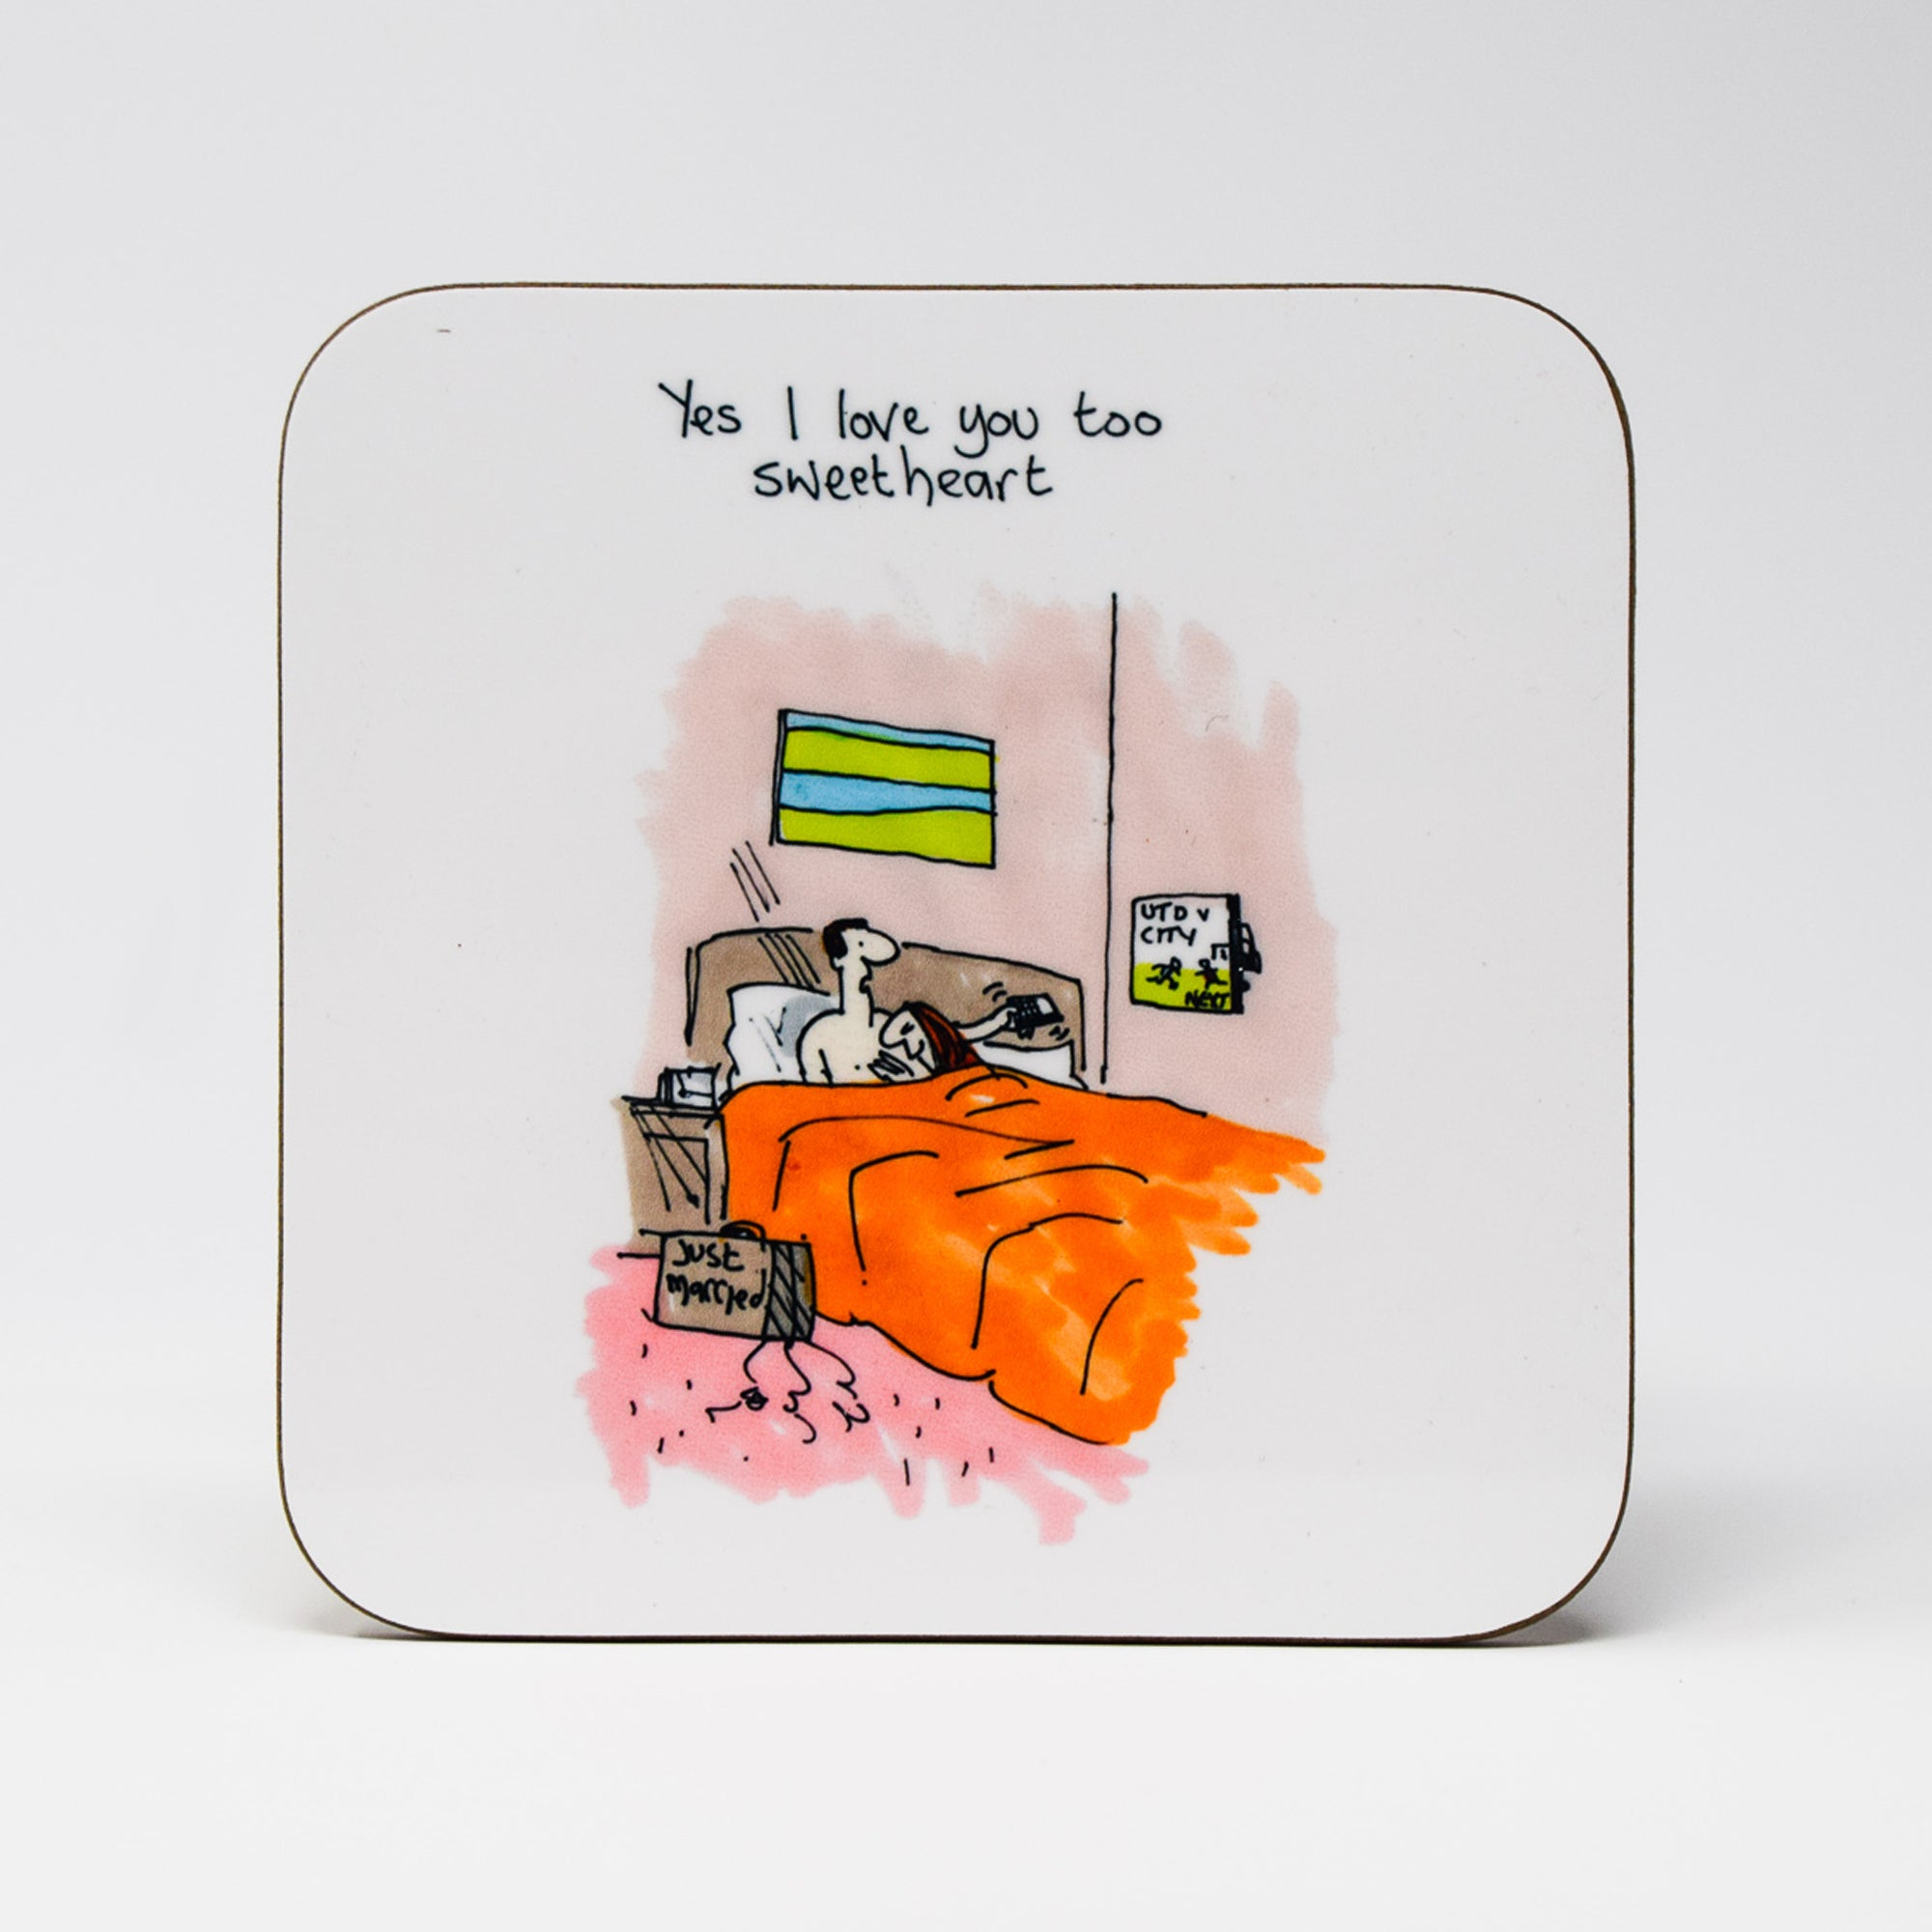 Manchester Derby Just Married Coaster by Tony Husband